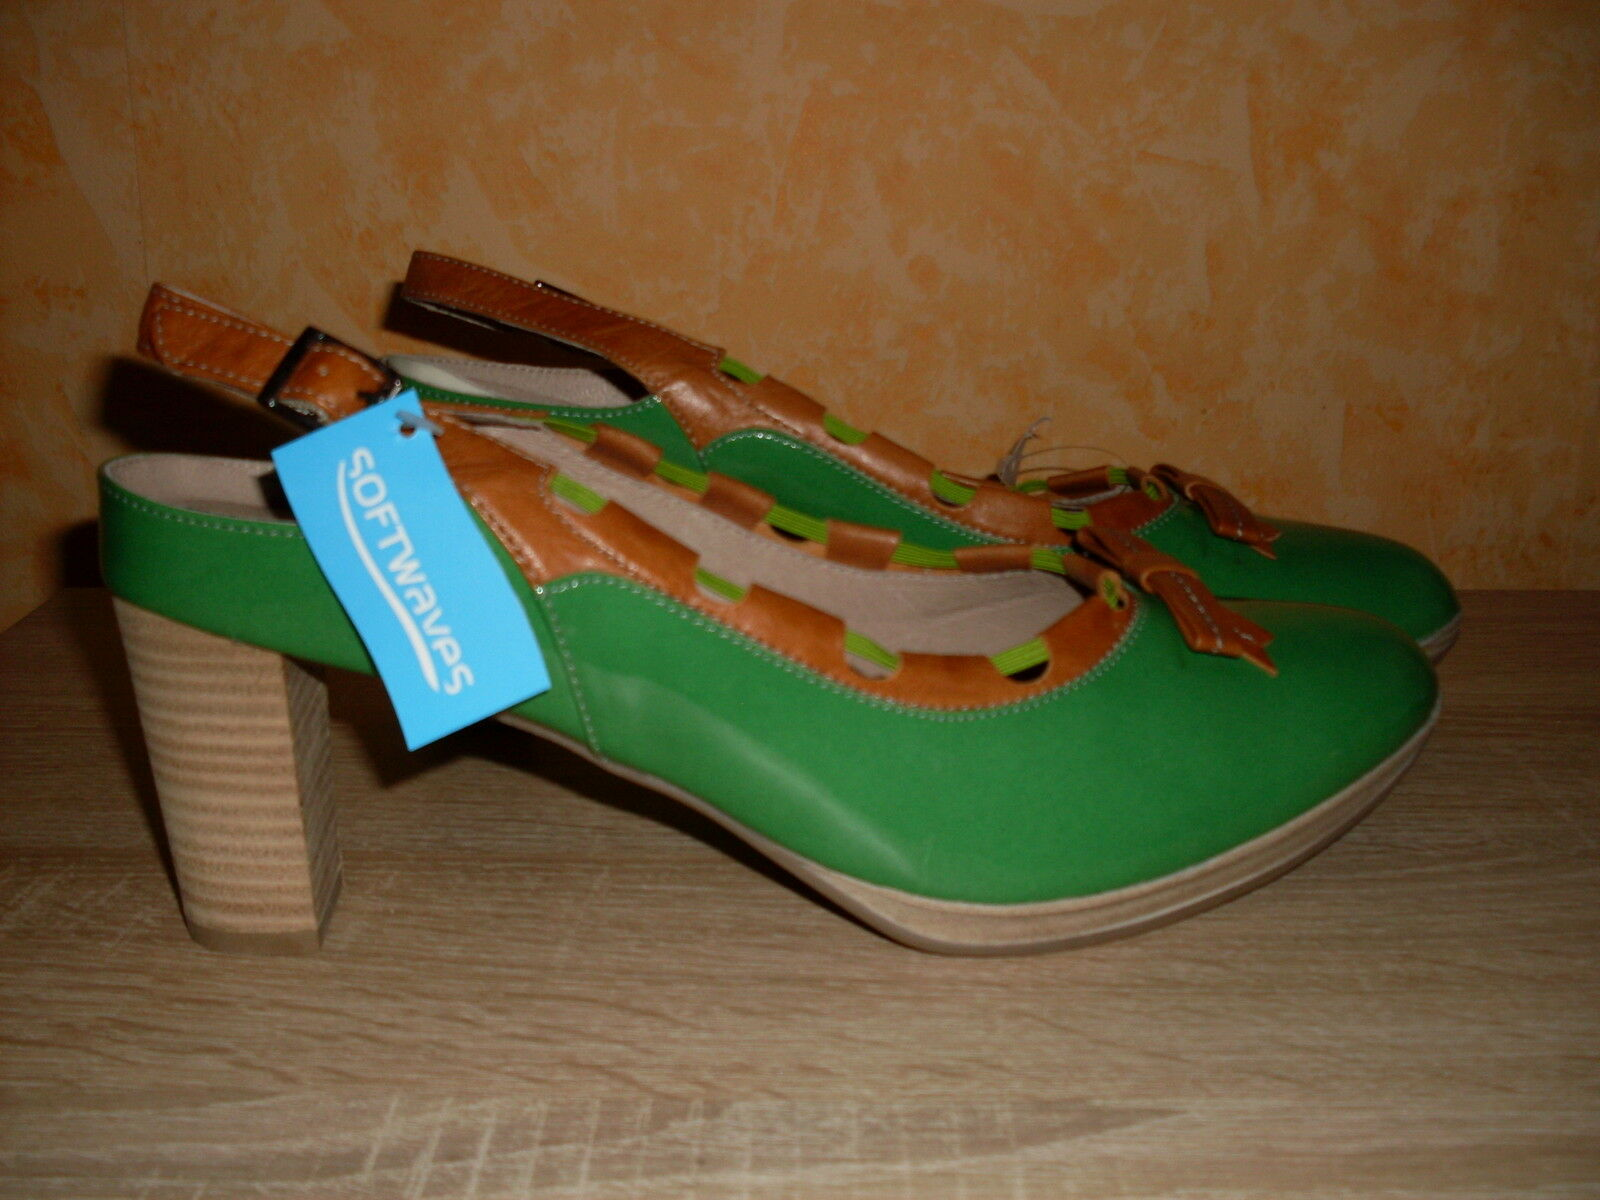 Softwaves Slingback NEU Gr. 45 in Lackleder grün / braun kombinertem Lackleder in II. WAHL 3b25b0